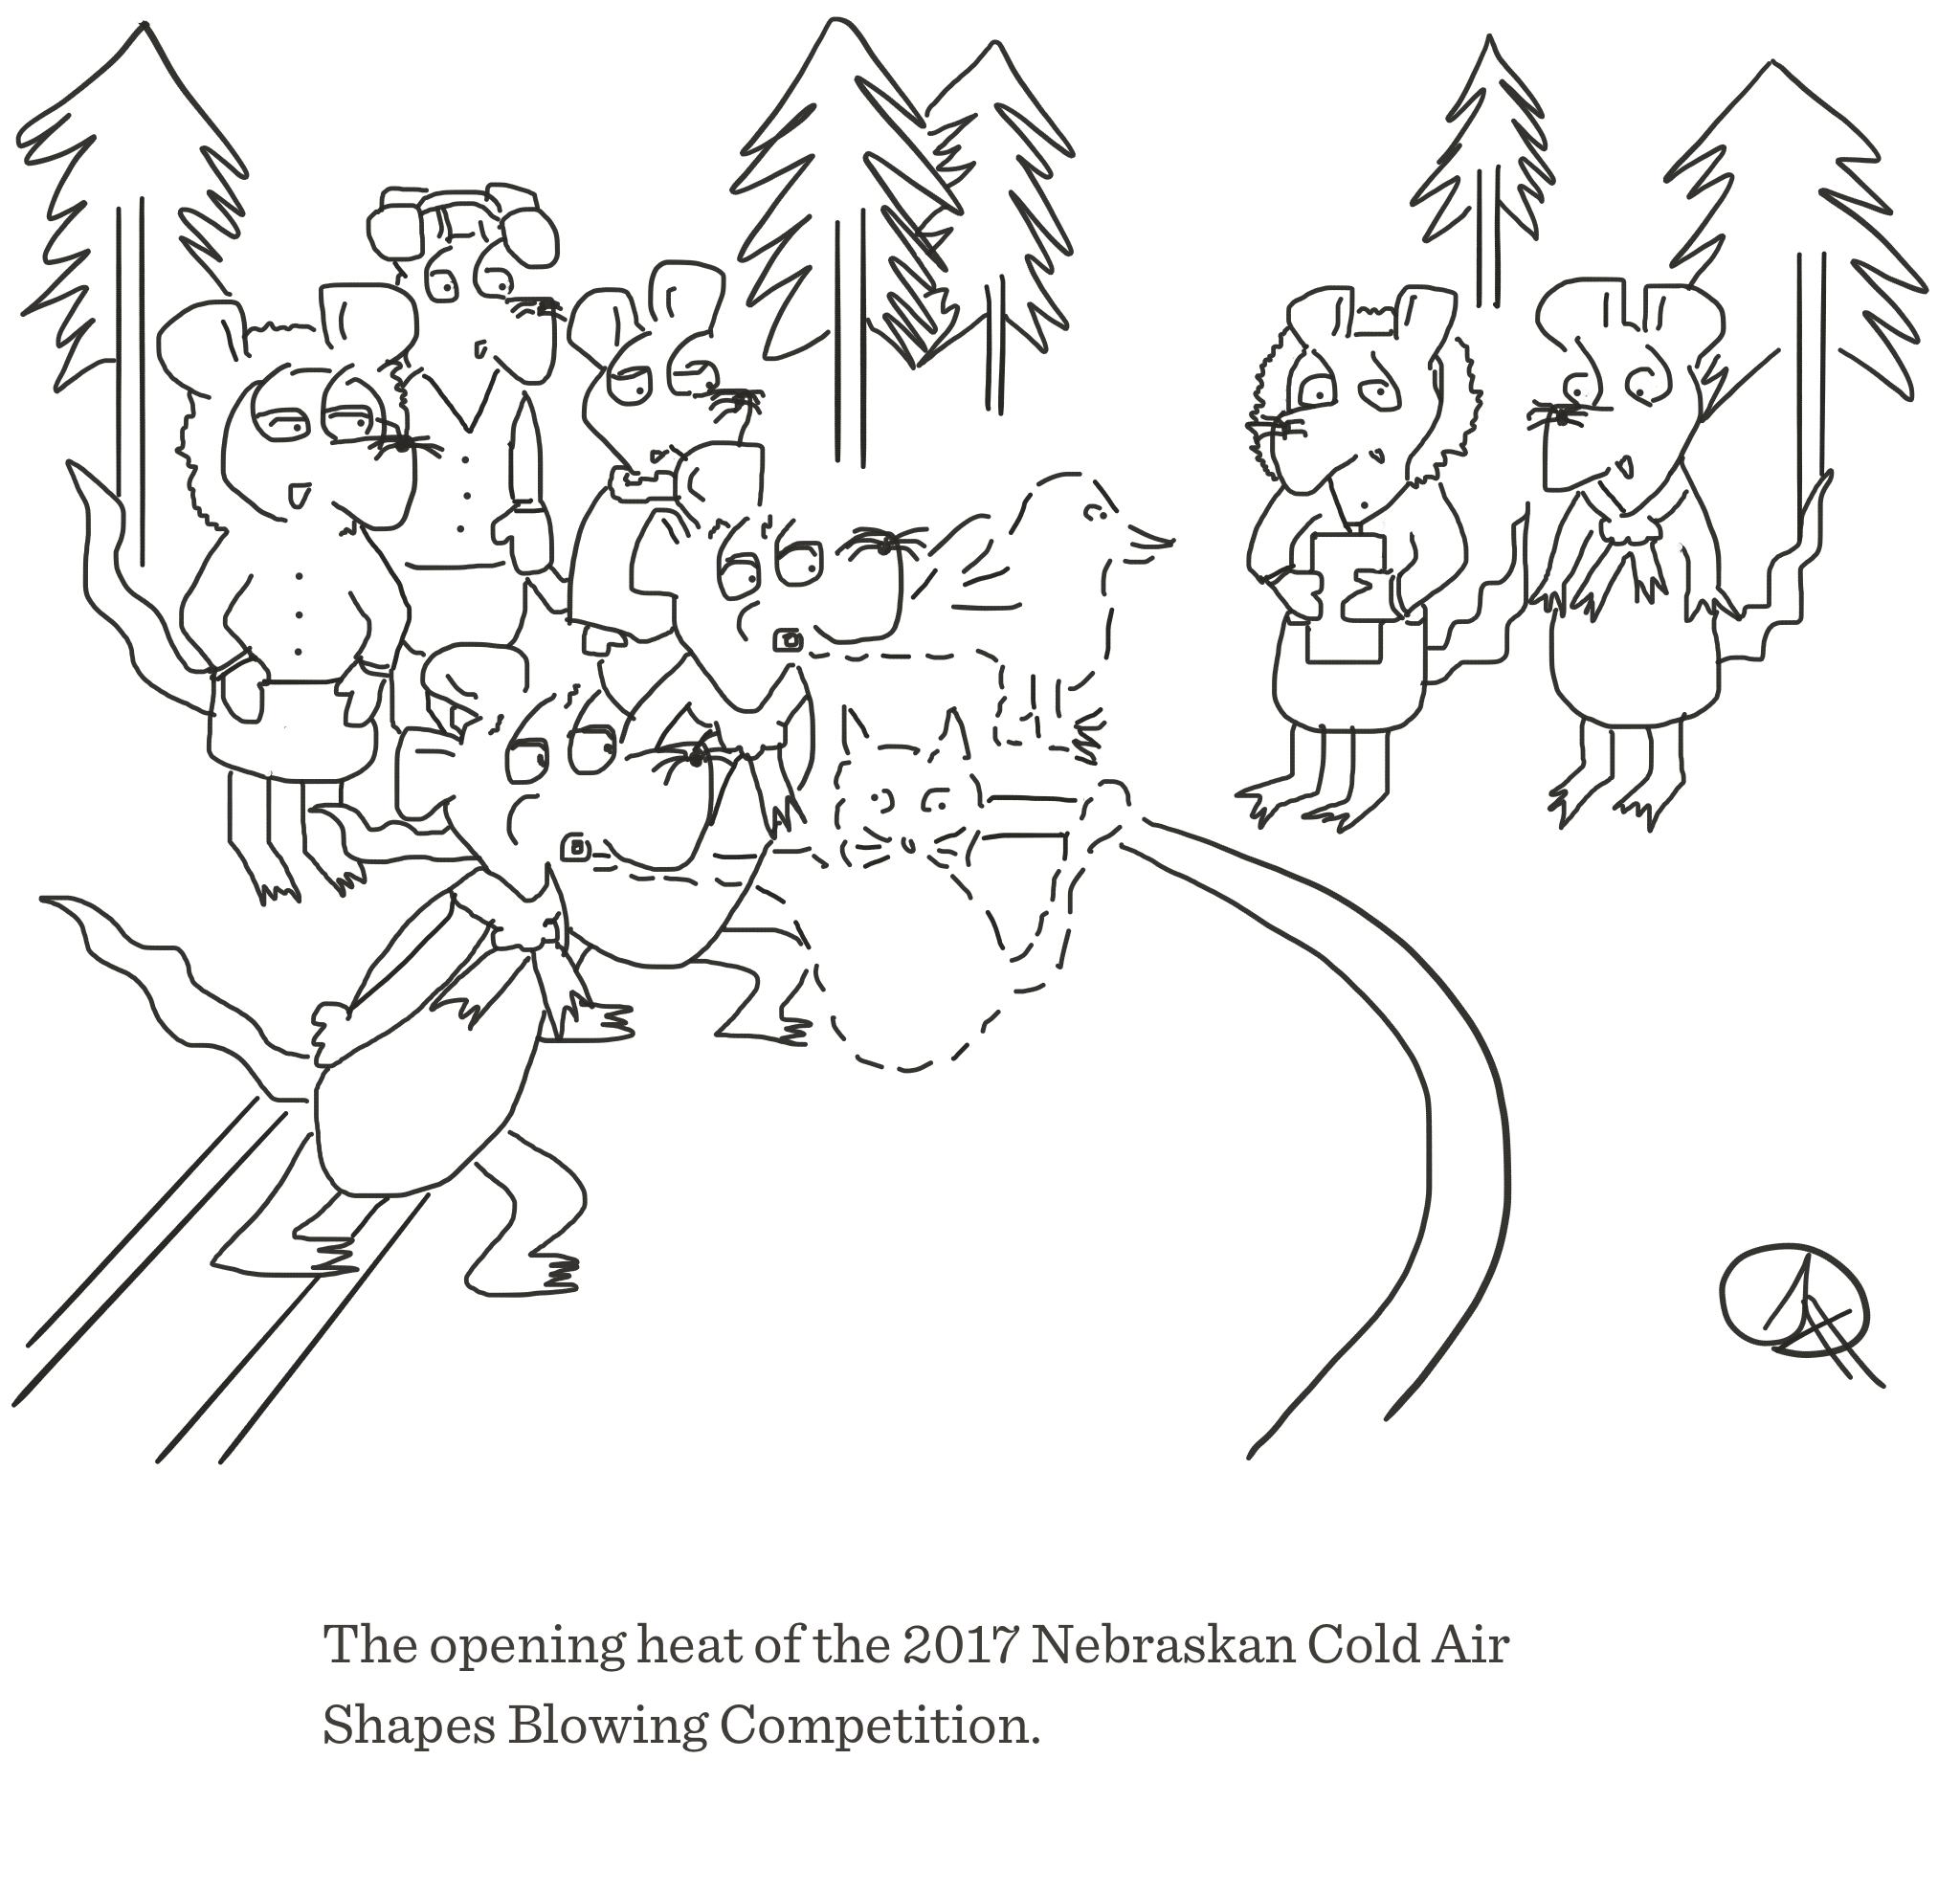 Nebraskan cold air shapes competition, The Happy Rat cartoon